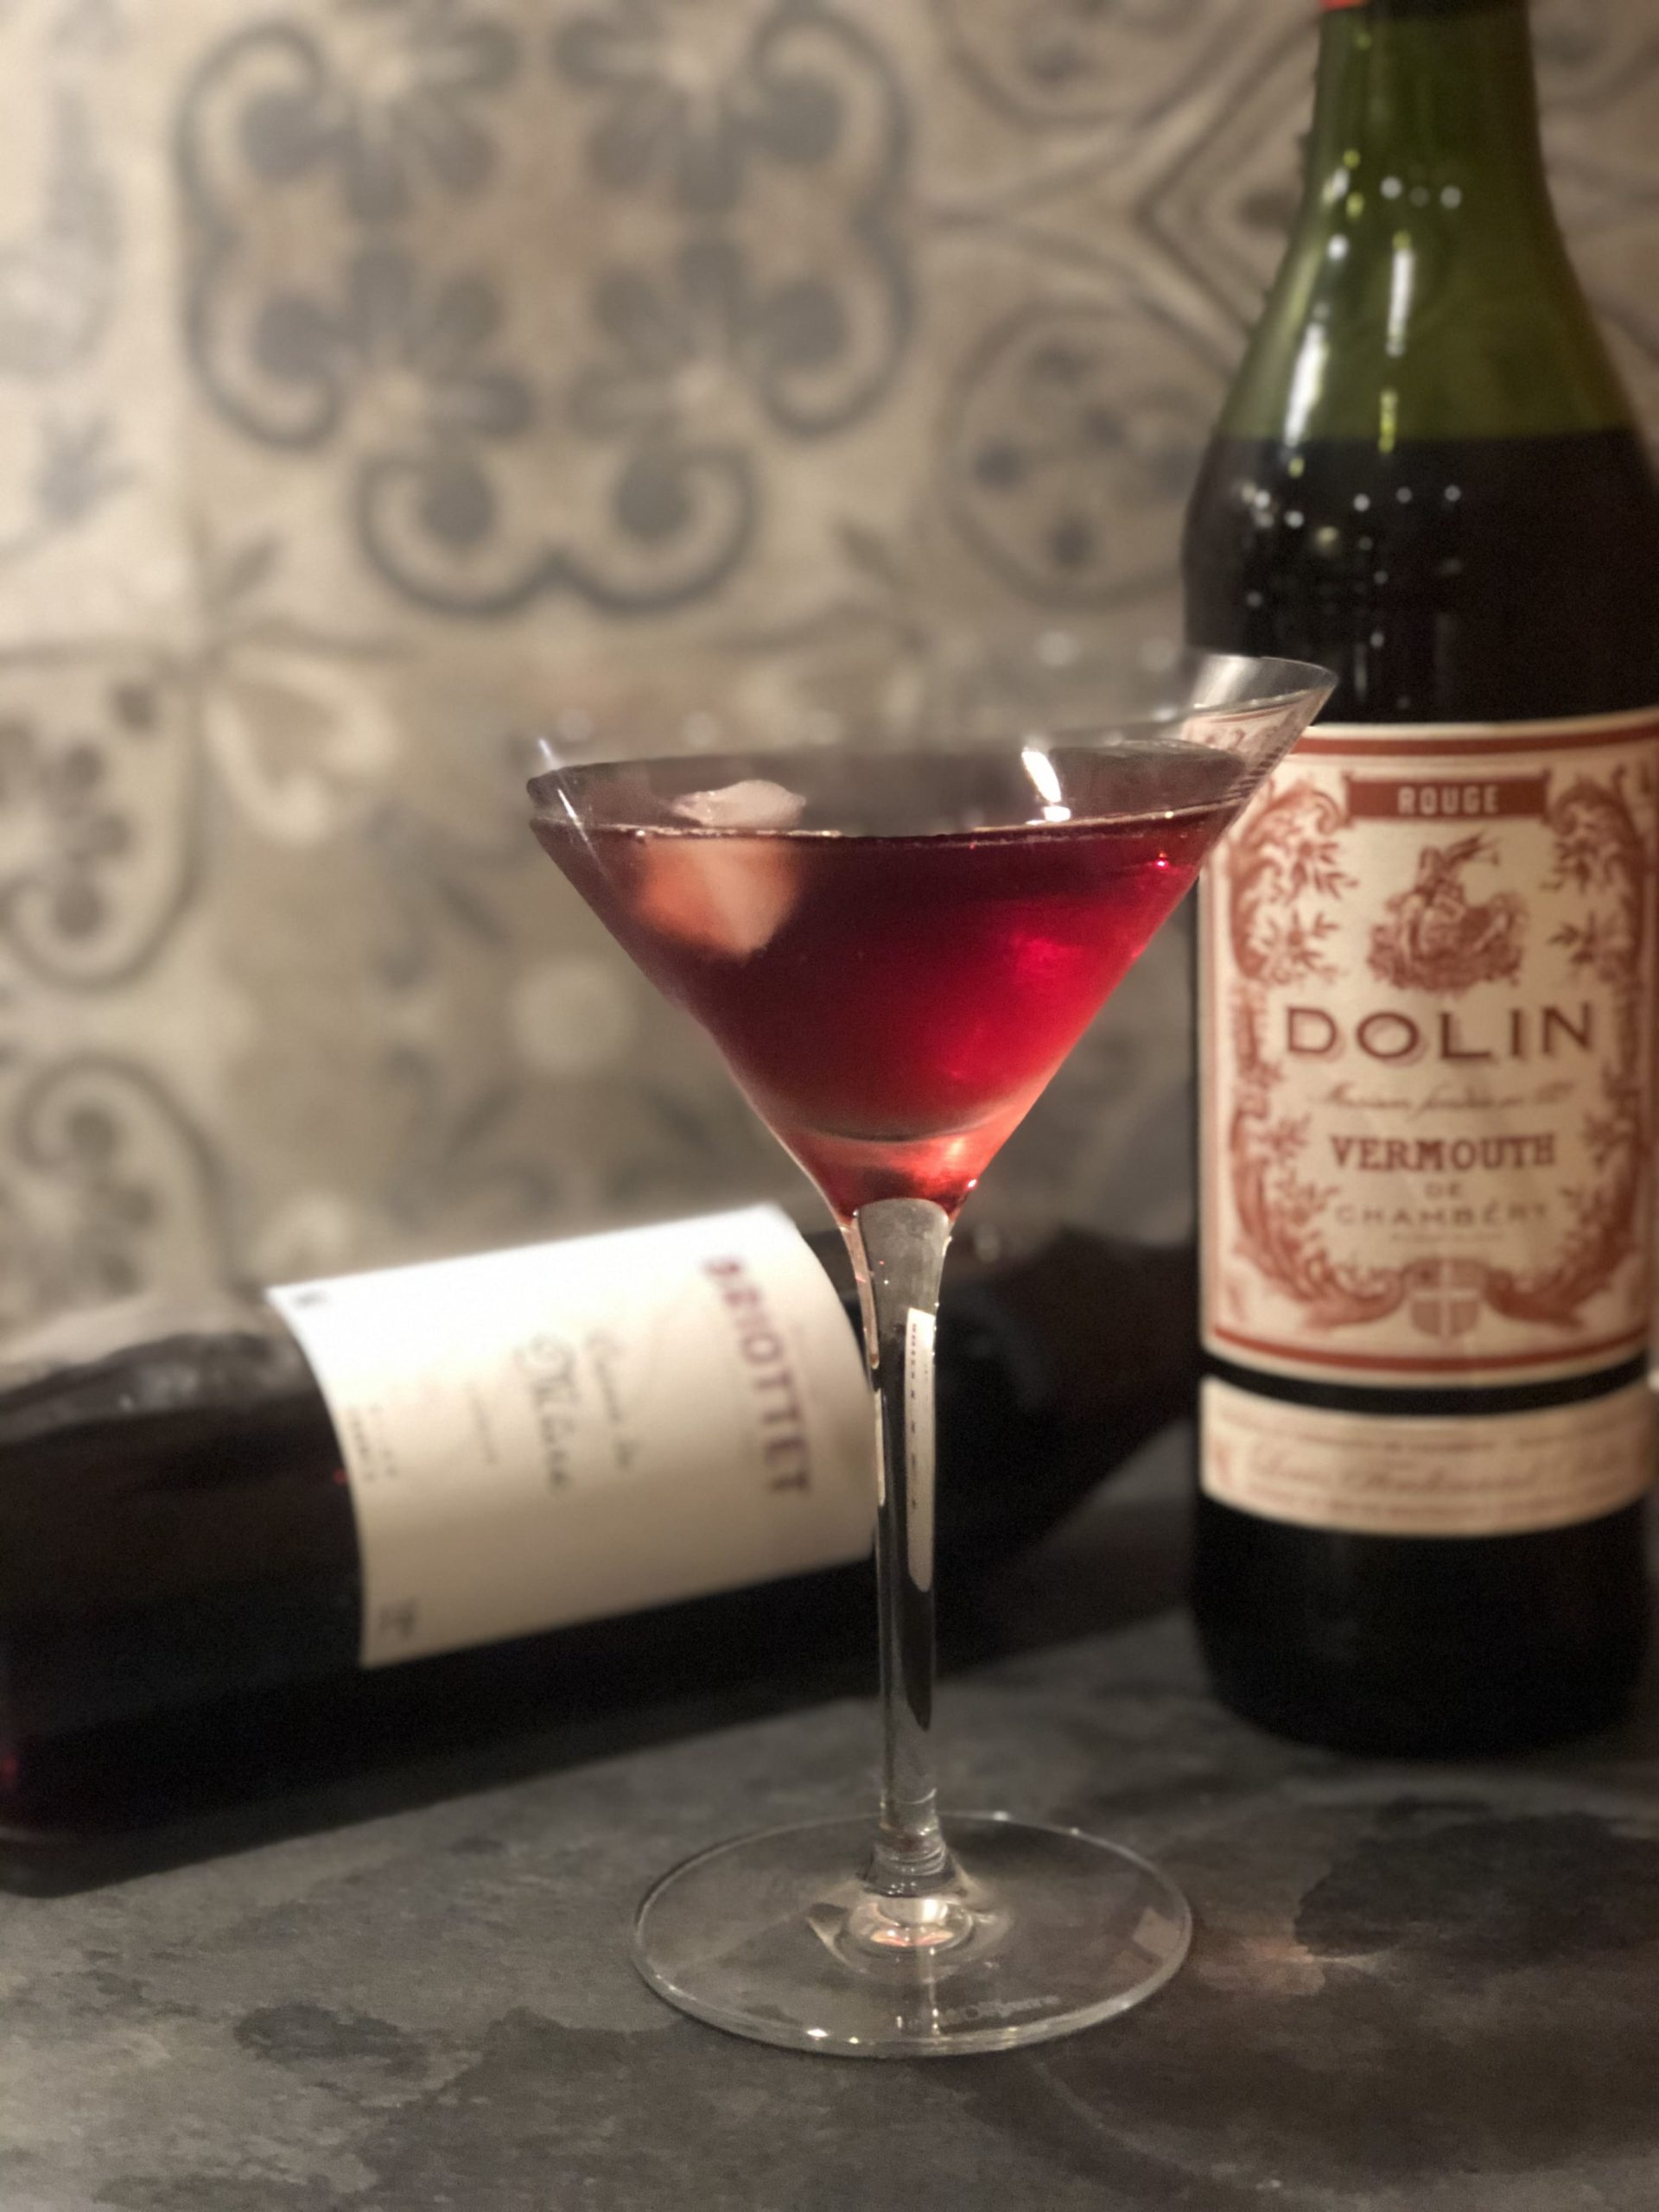 Cocktail Vermouth Mûre Briottet